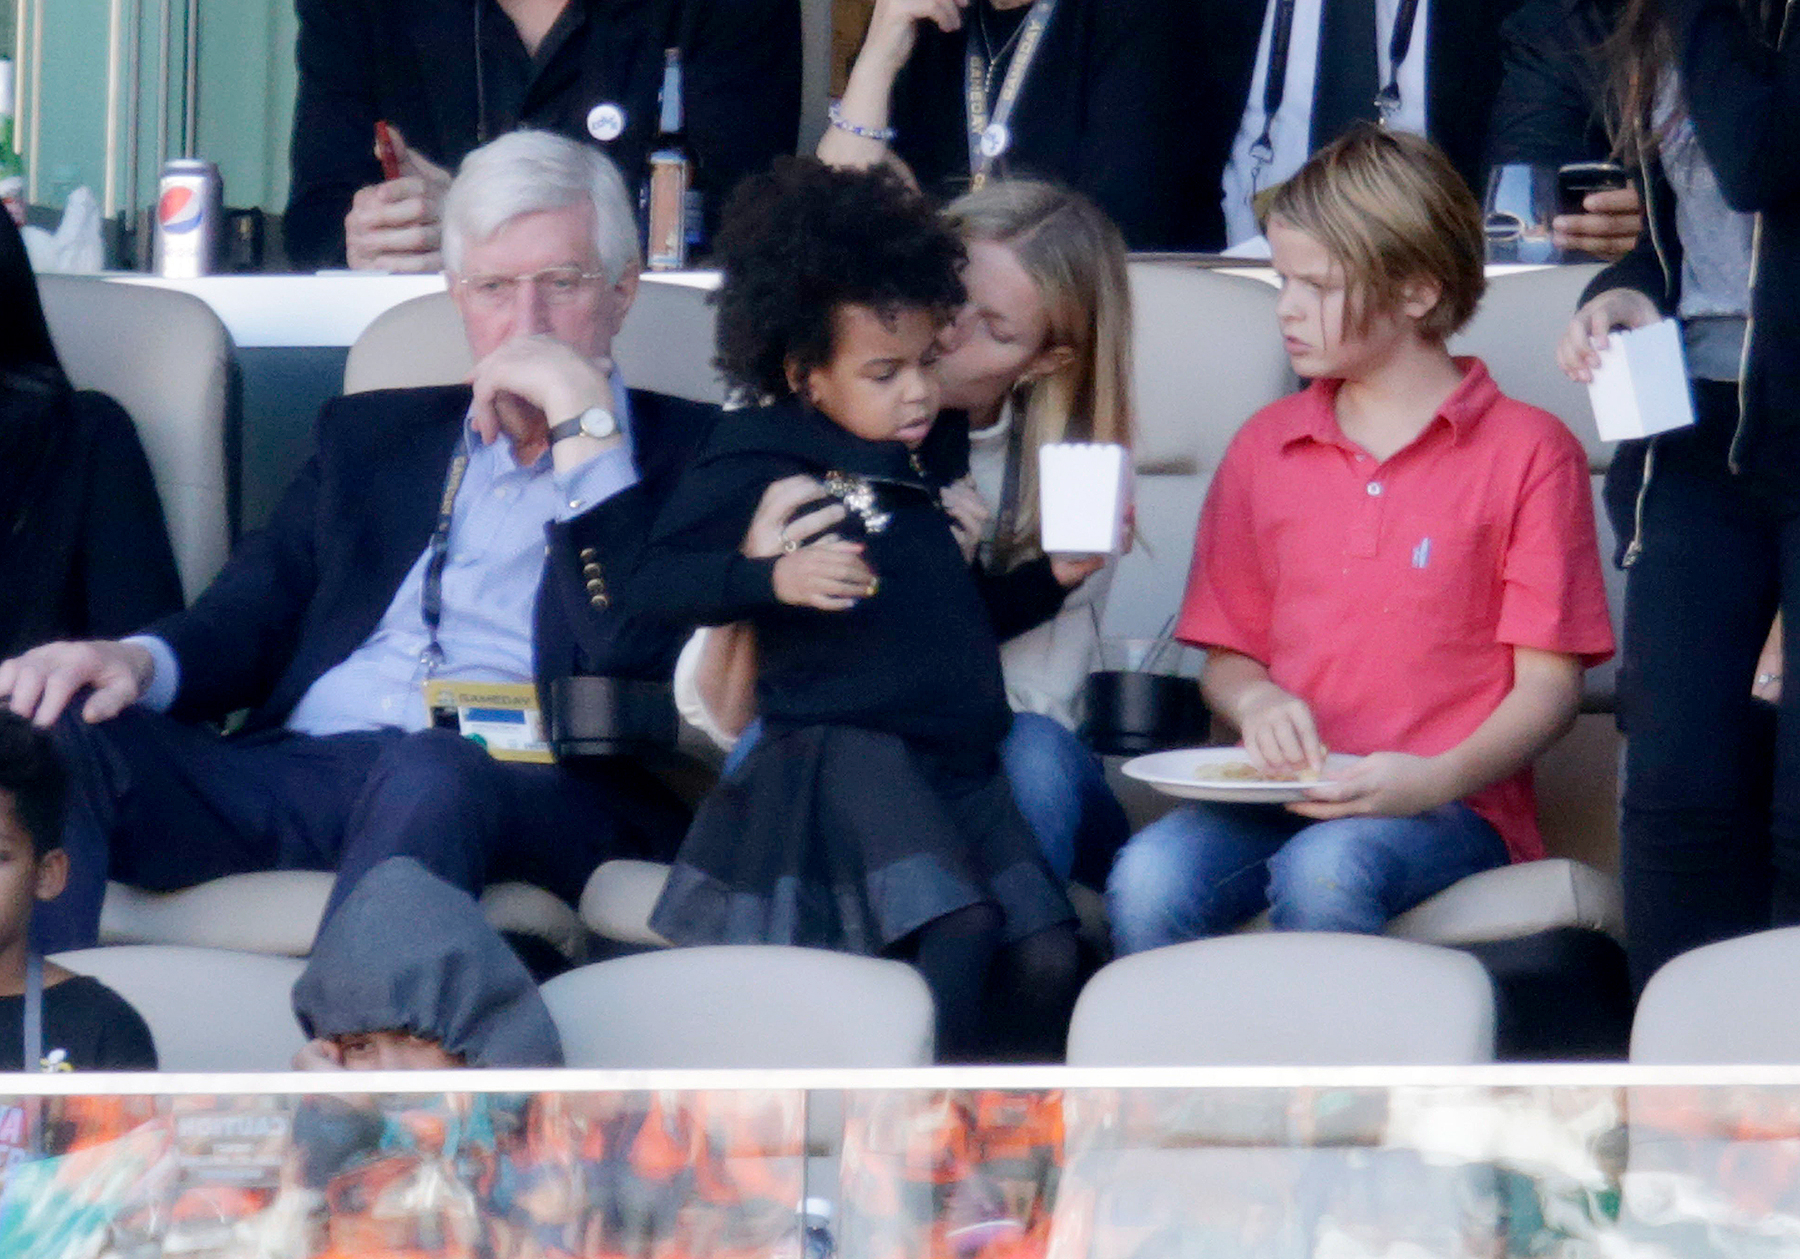 Gwyneth Paltrow holds Jay-Z and Beyonce's daughter Blue Ivy Carter as she attends the 2016 Super Bowl with her children Apple and Moses Martin in Santa Clara, California on February 7, 2016.